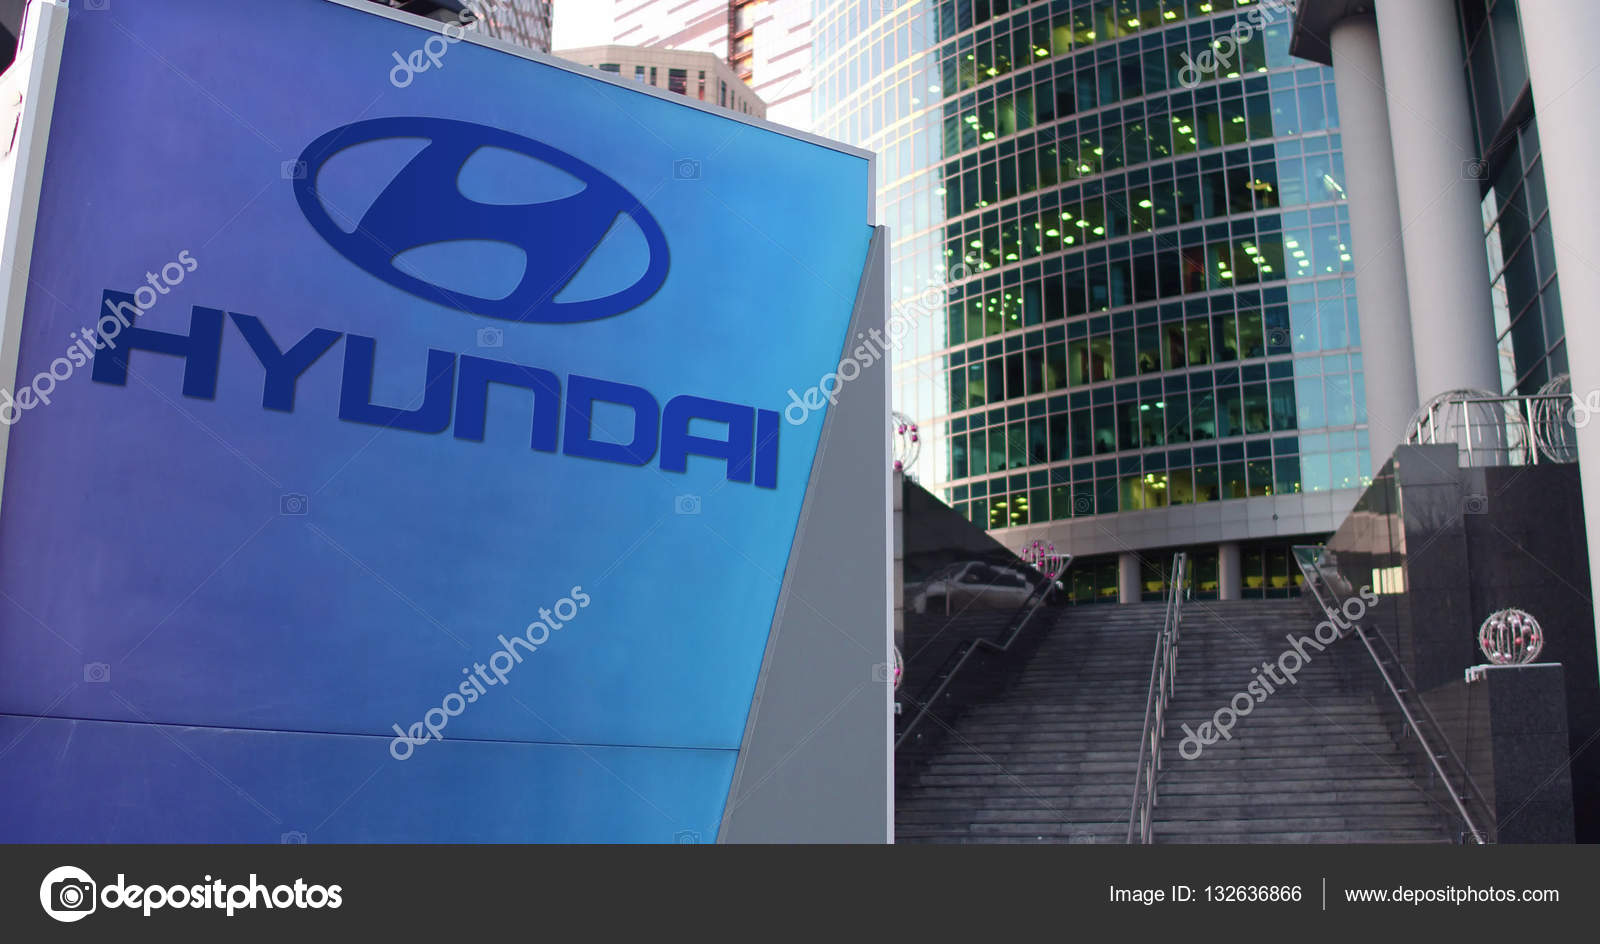 Hyundai motor company united states - Street Signage Board With Hyundai Motor Company Logo Modern Office Center Skyscraper And Stairs Background Editorial 3d Rendering United States Photo By